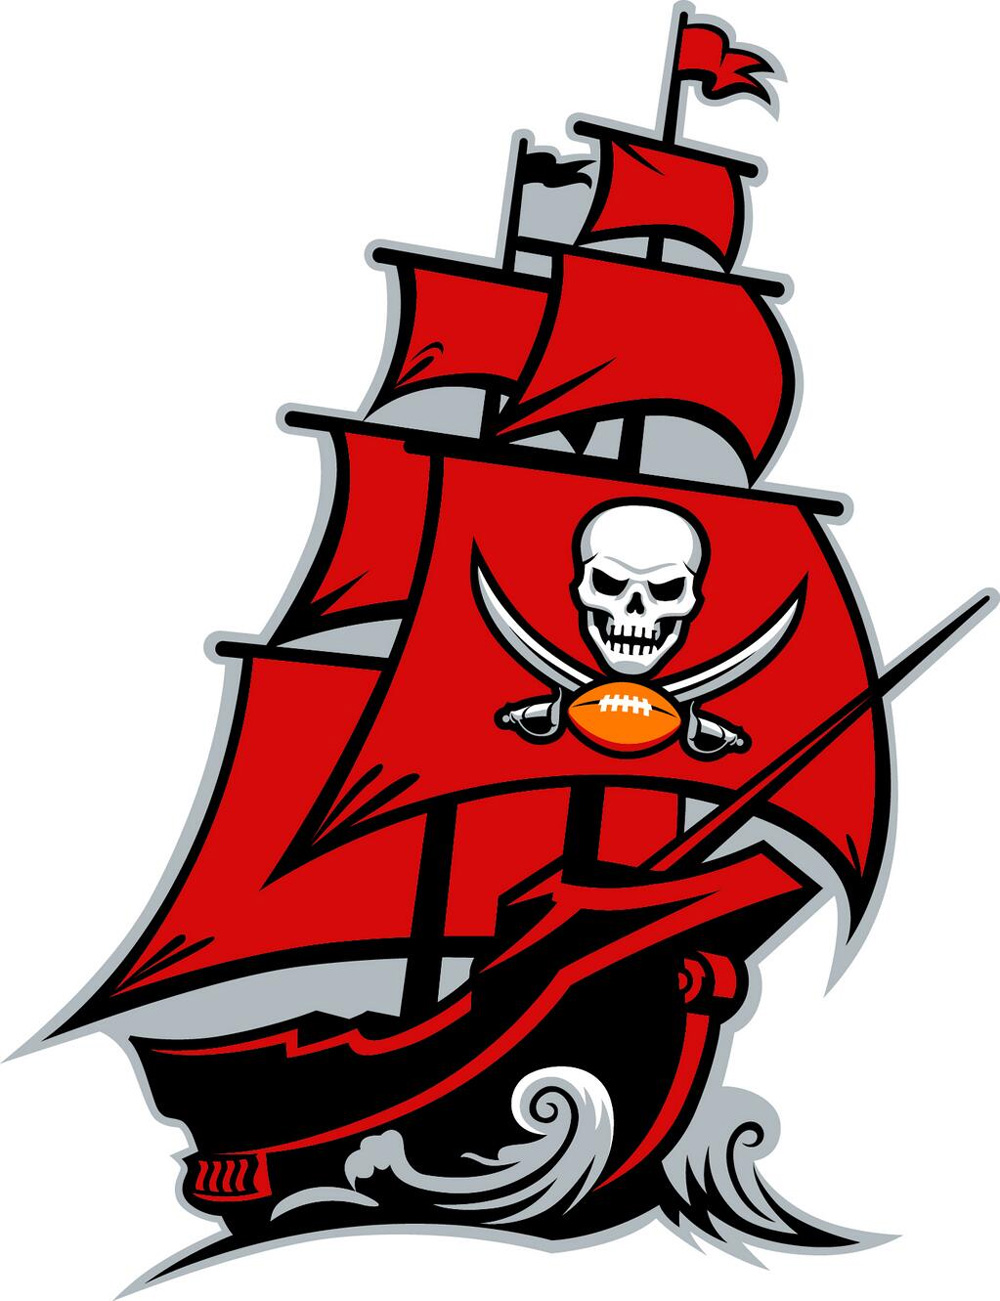 1000x1301 Brand New New Logo, Identity, And Helmet For Tampa Bay Buccaneers